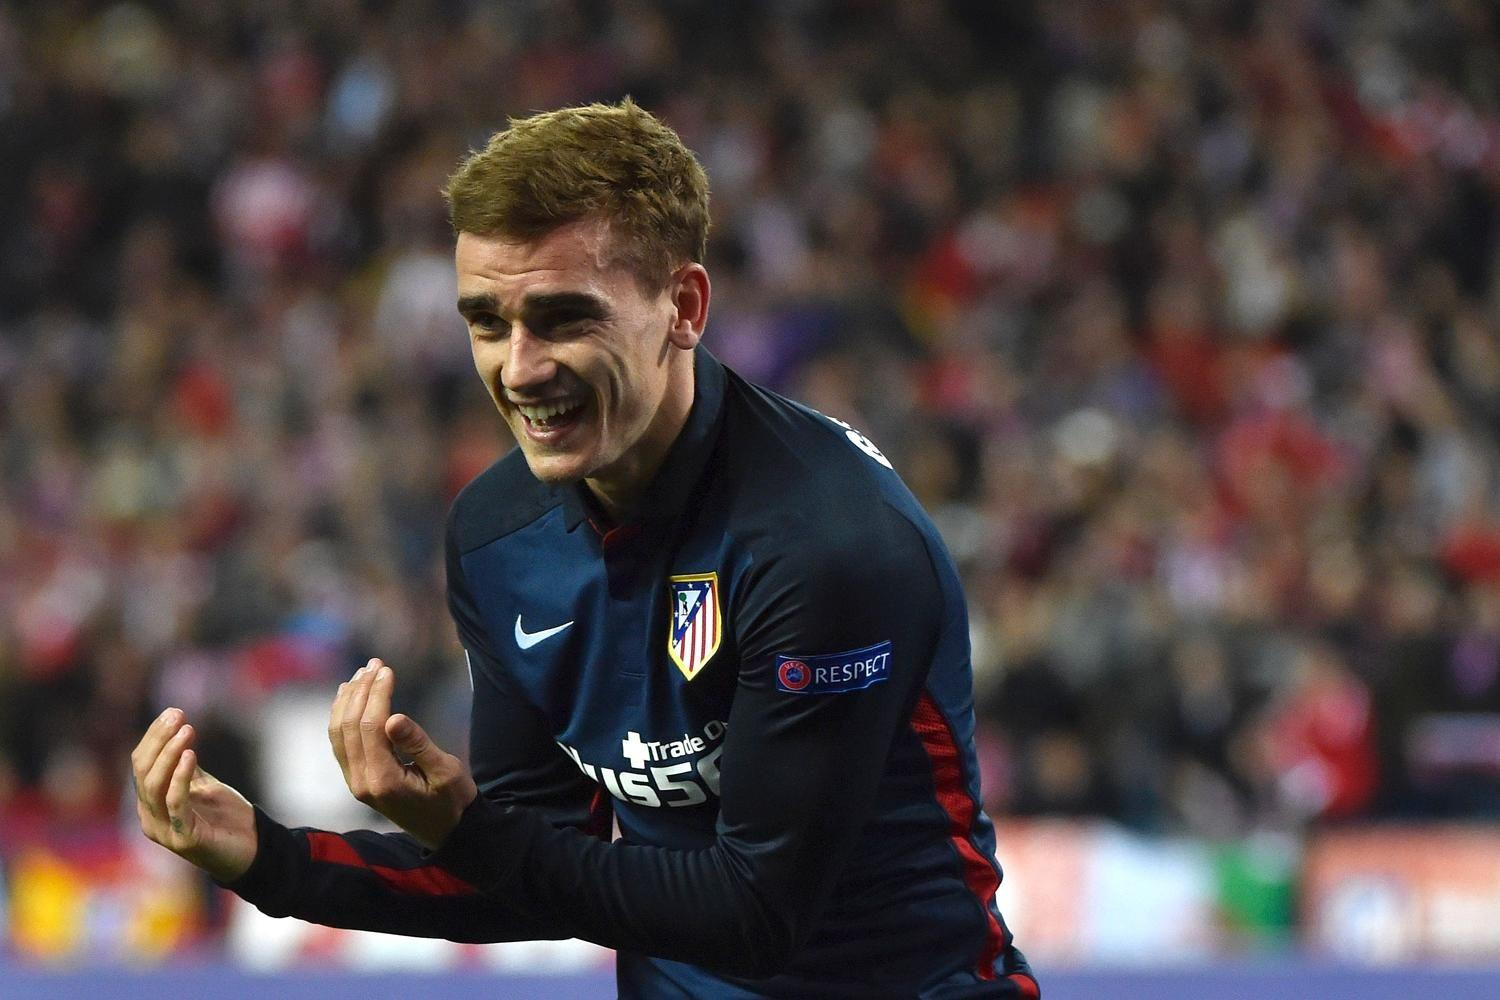 Antoine Griezmann Wallpapers | WeNeedFun